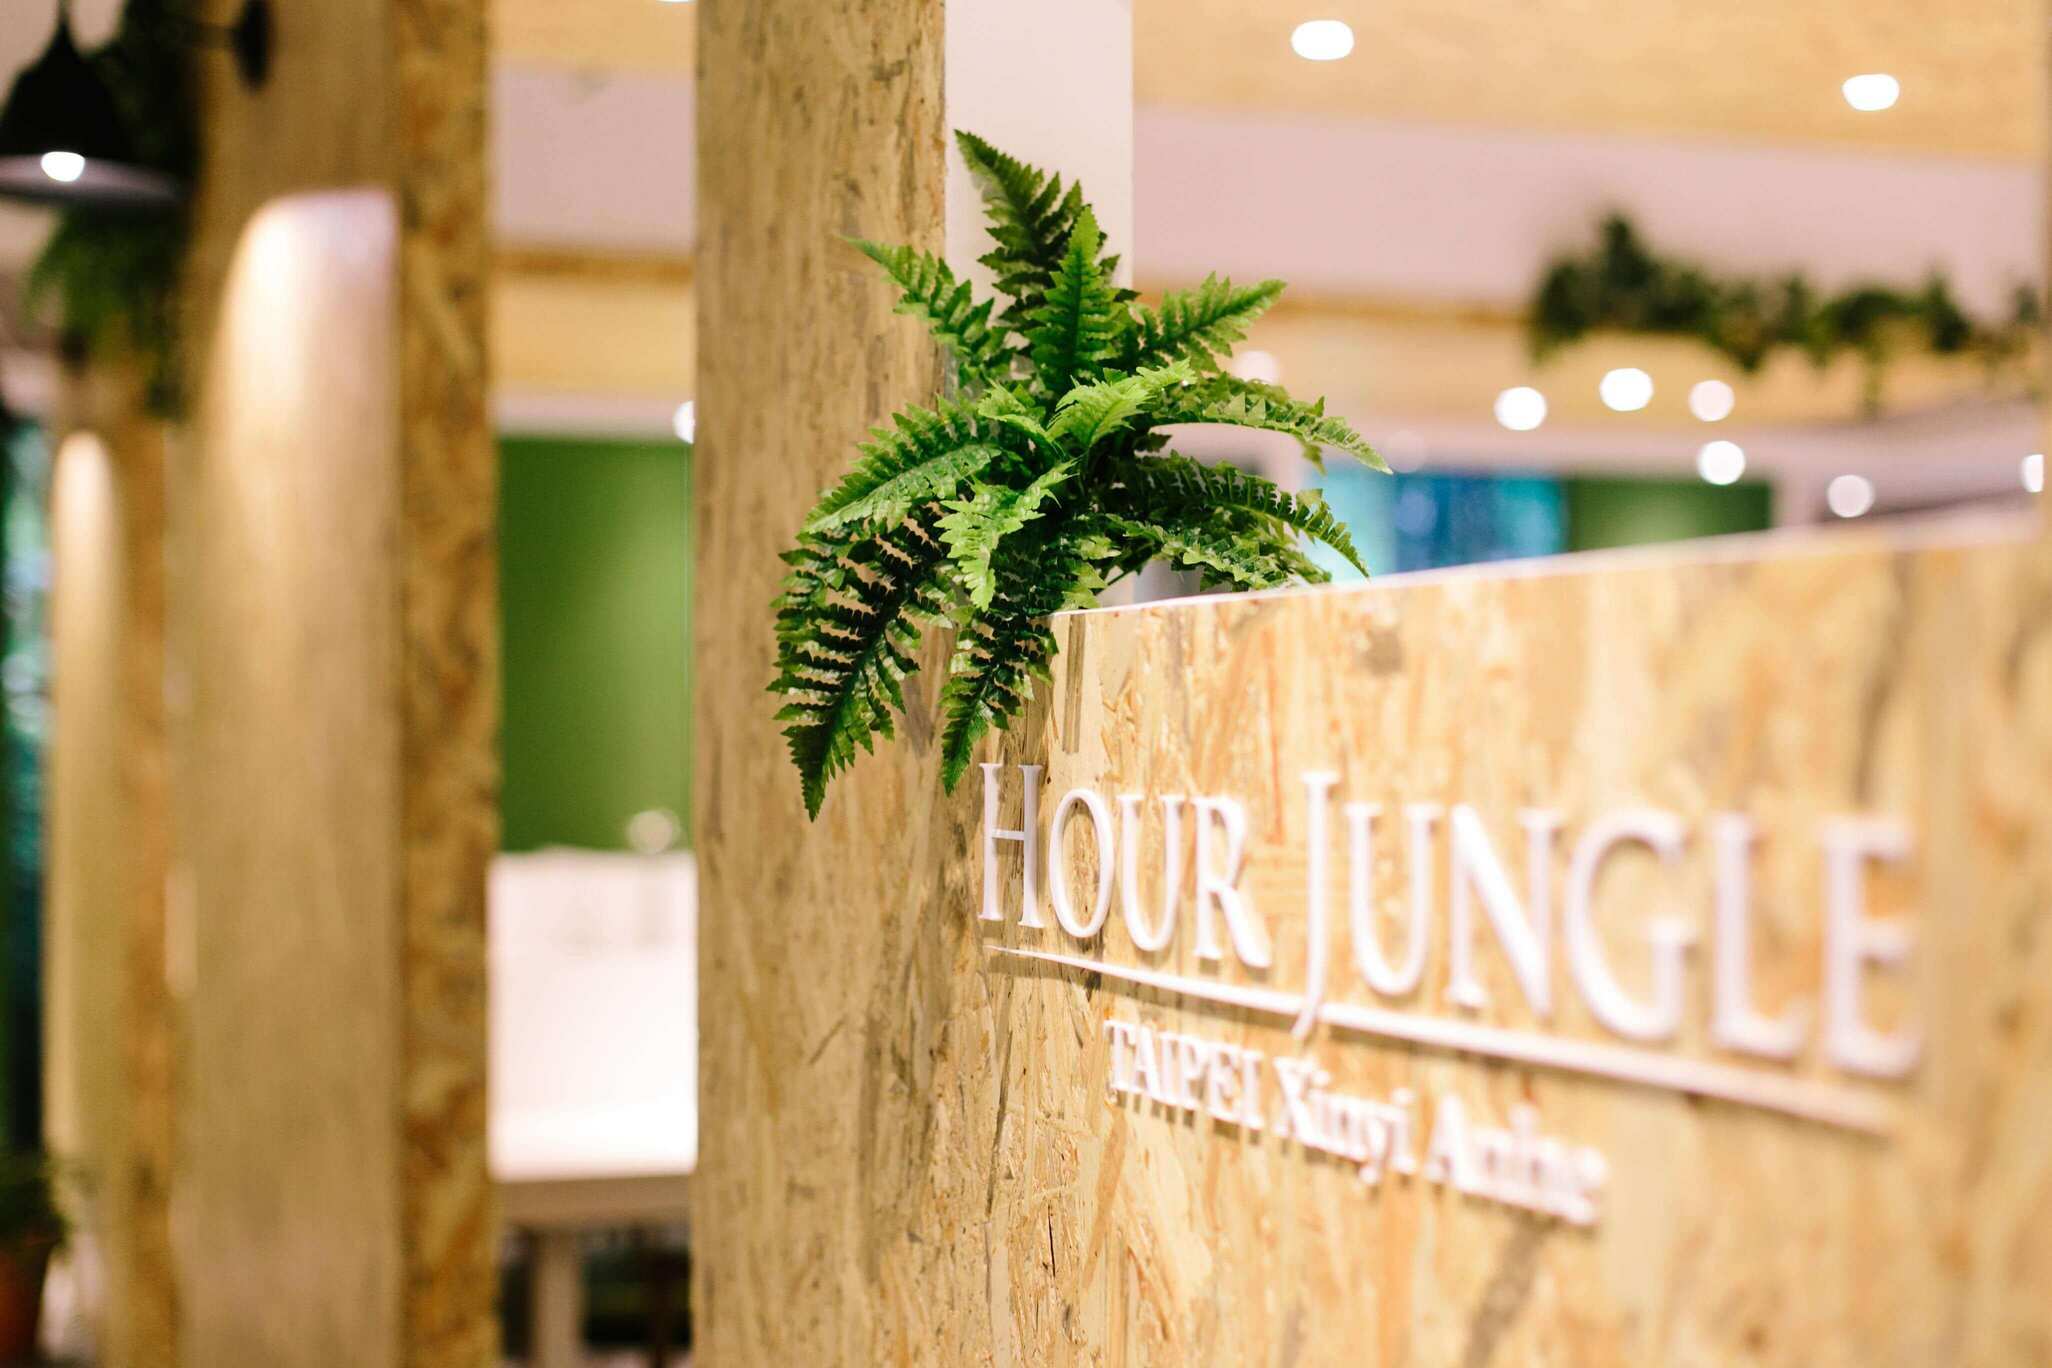 Hour Jungle Coworking 共同工作空間